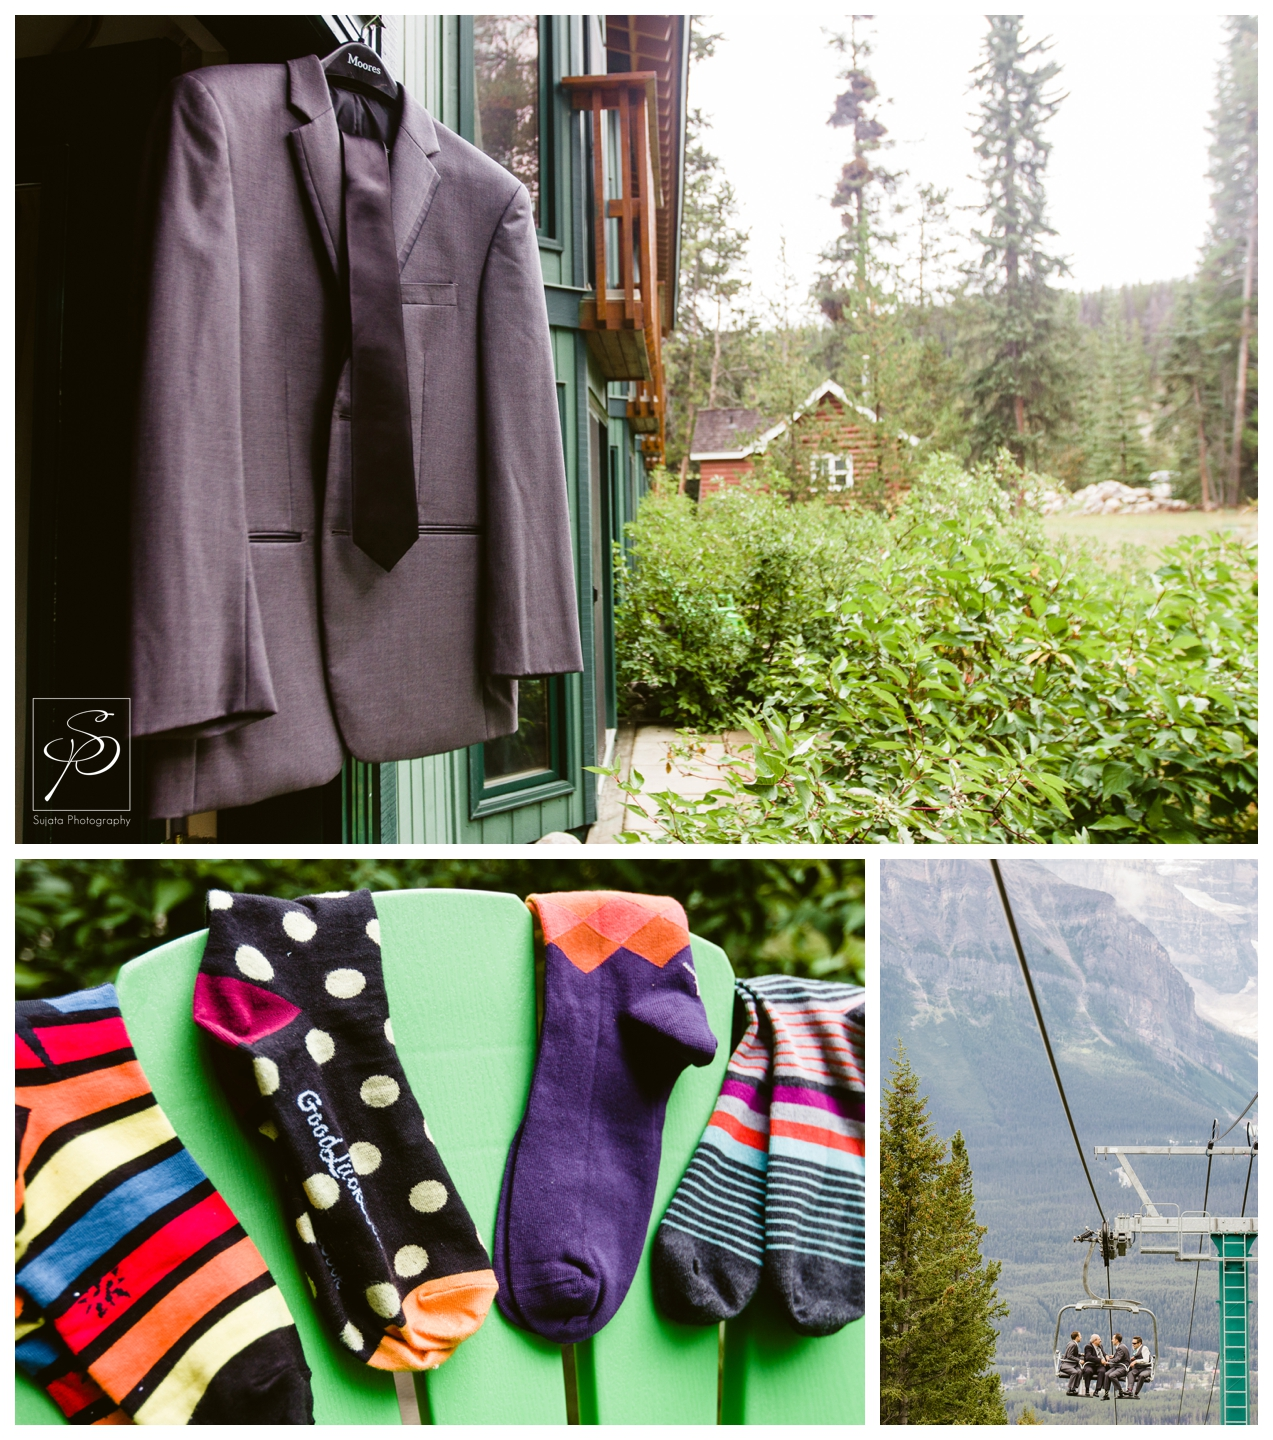 Groom's suit and colourful socks hanging at Lake Louise